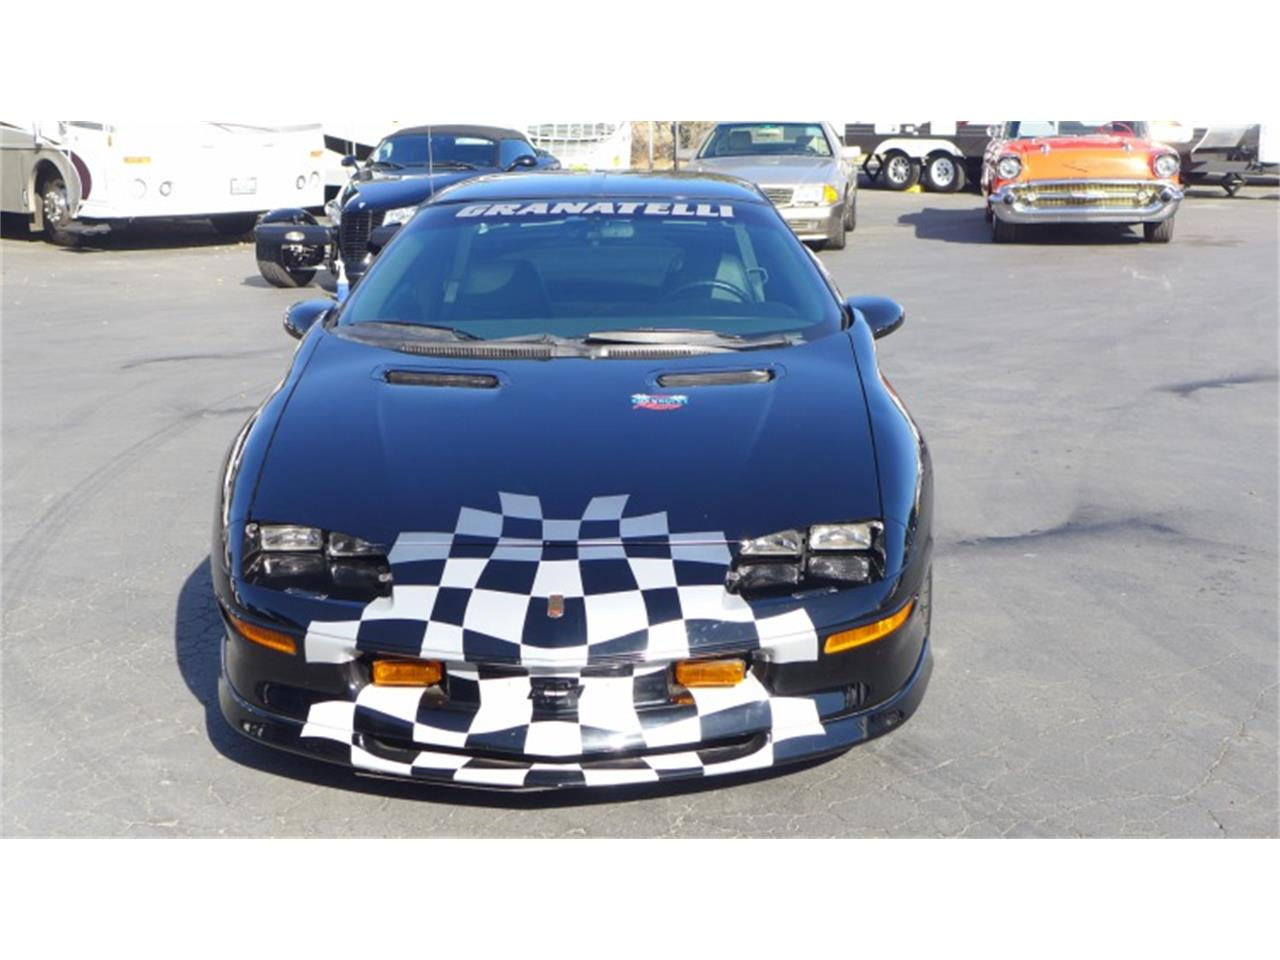 Large Picture of '96 Camaro Z28 located in Sparks Nevada Auction Vehicle Offered by Motorsport Auction Group 797664 - QGIF